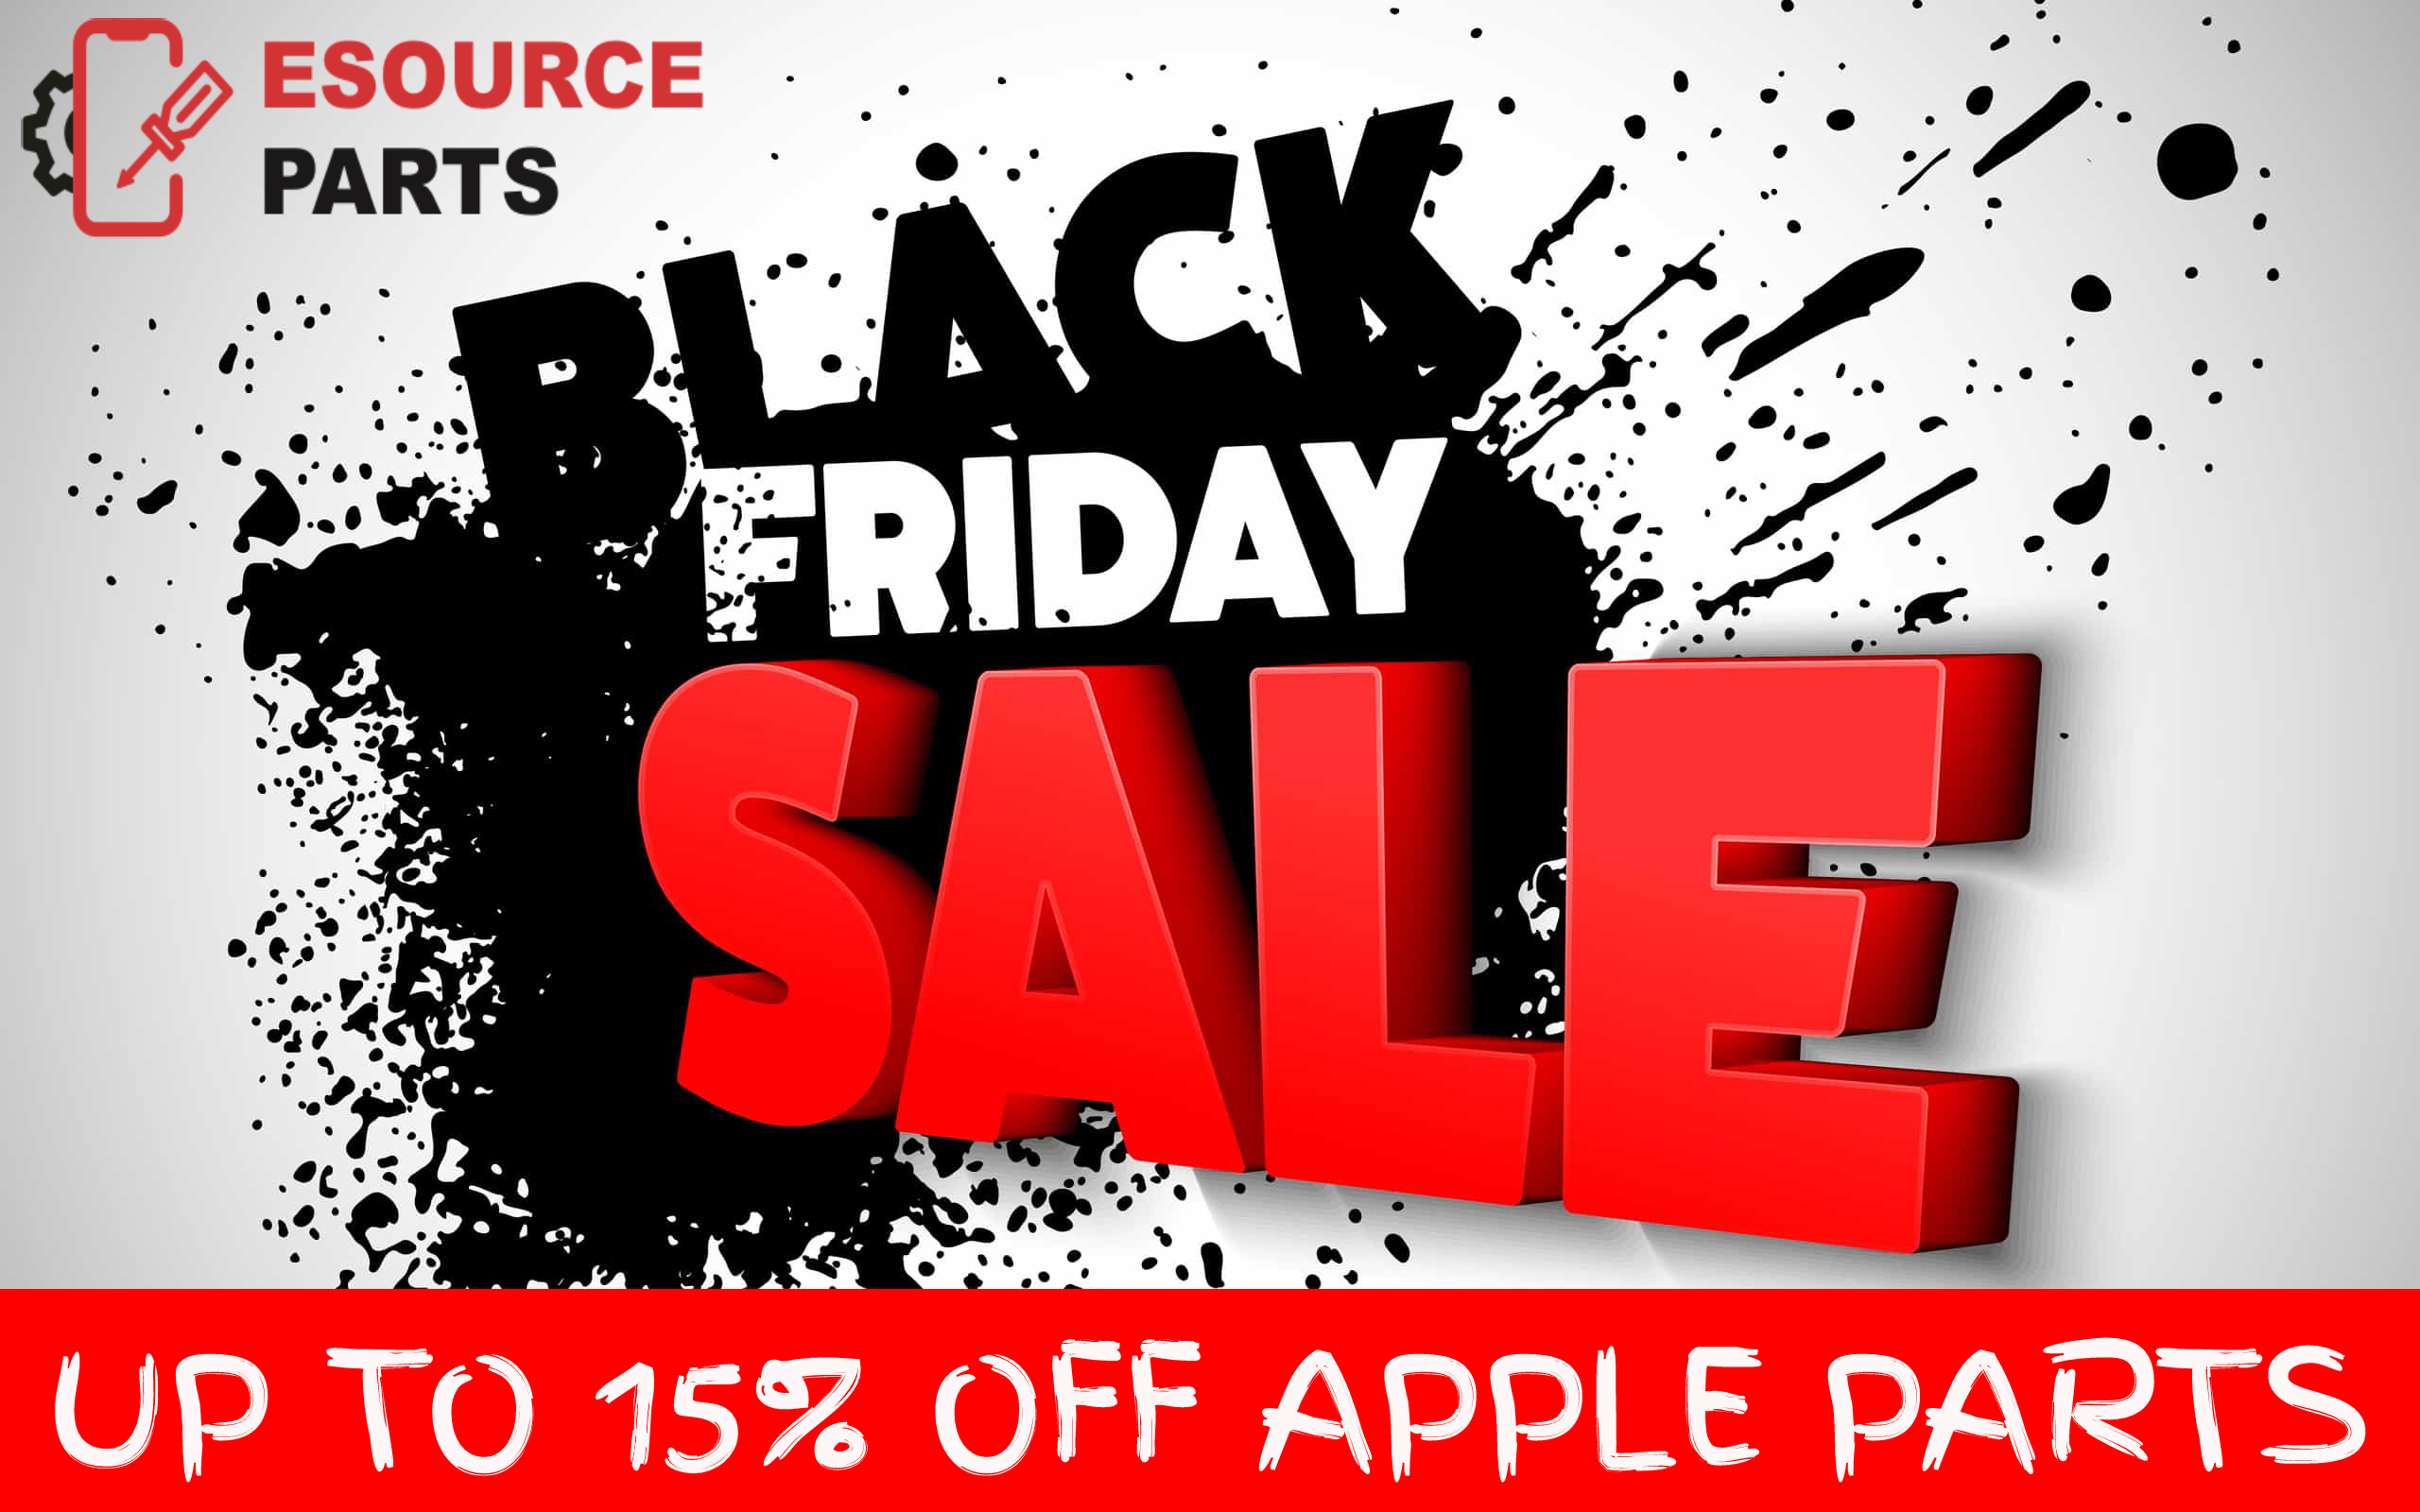 Black Friday Sale Up 15 Off Esource Parts In 2020 Black Friday Sale Black Friday Black Friday Ads